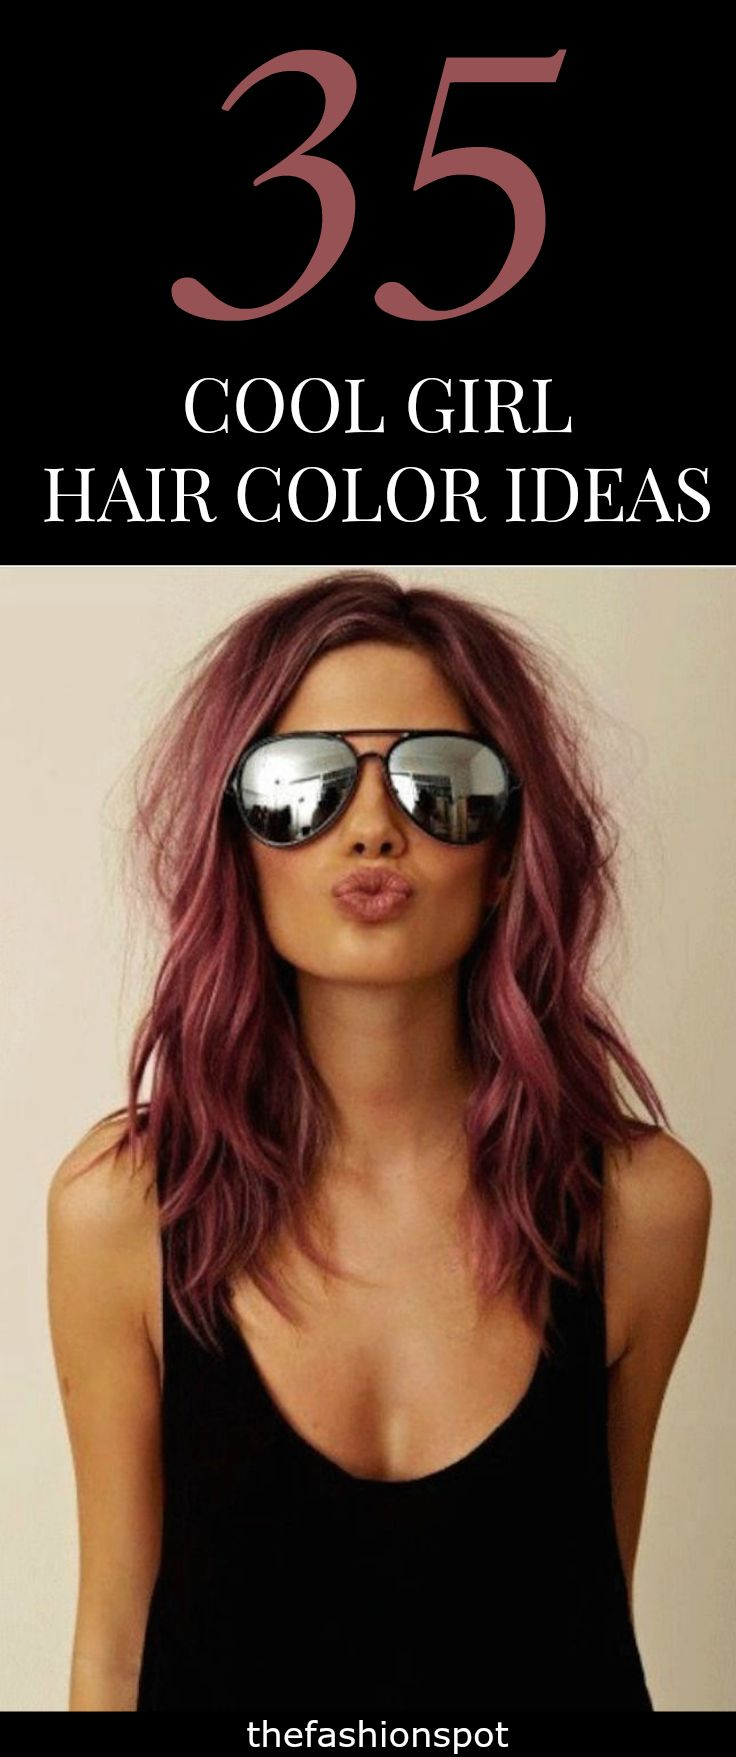 35 Cool Hair Color Ideas To Try In 2017